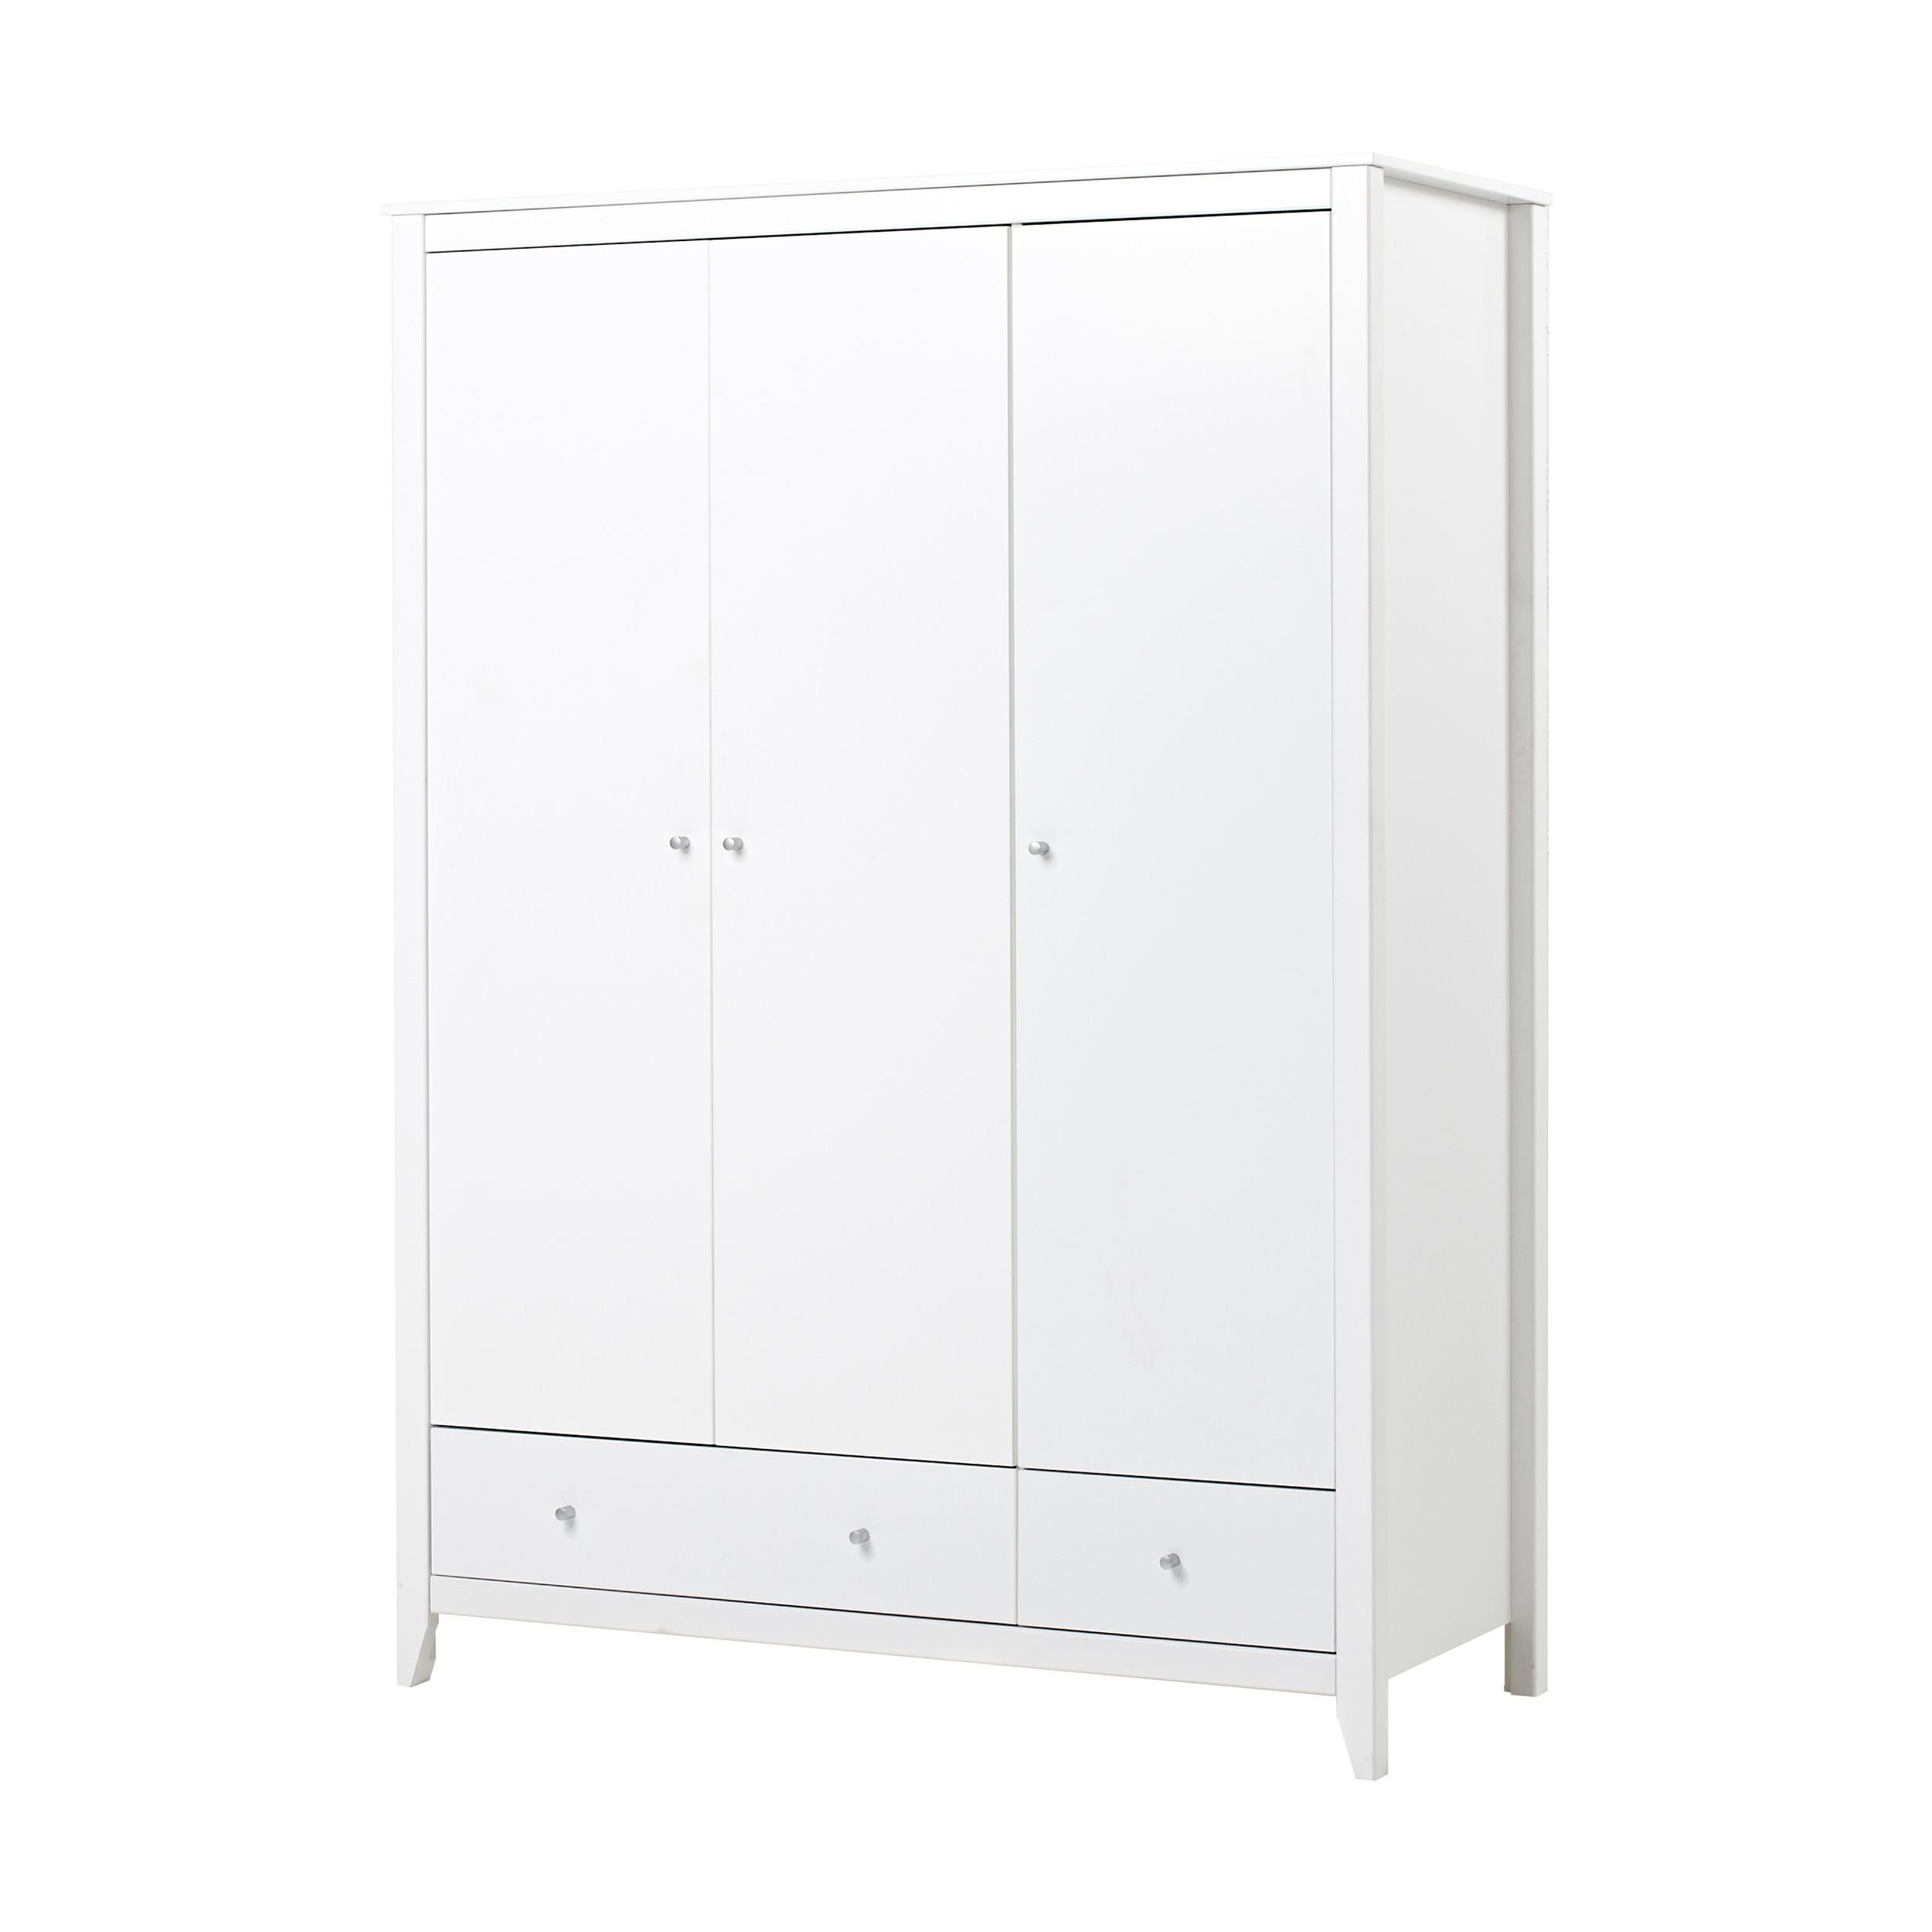 Hoppekids - Wardrobe w. 3 Doors & 2 Drawers